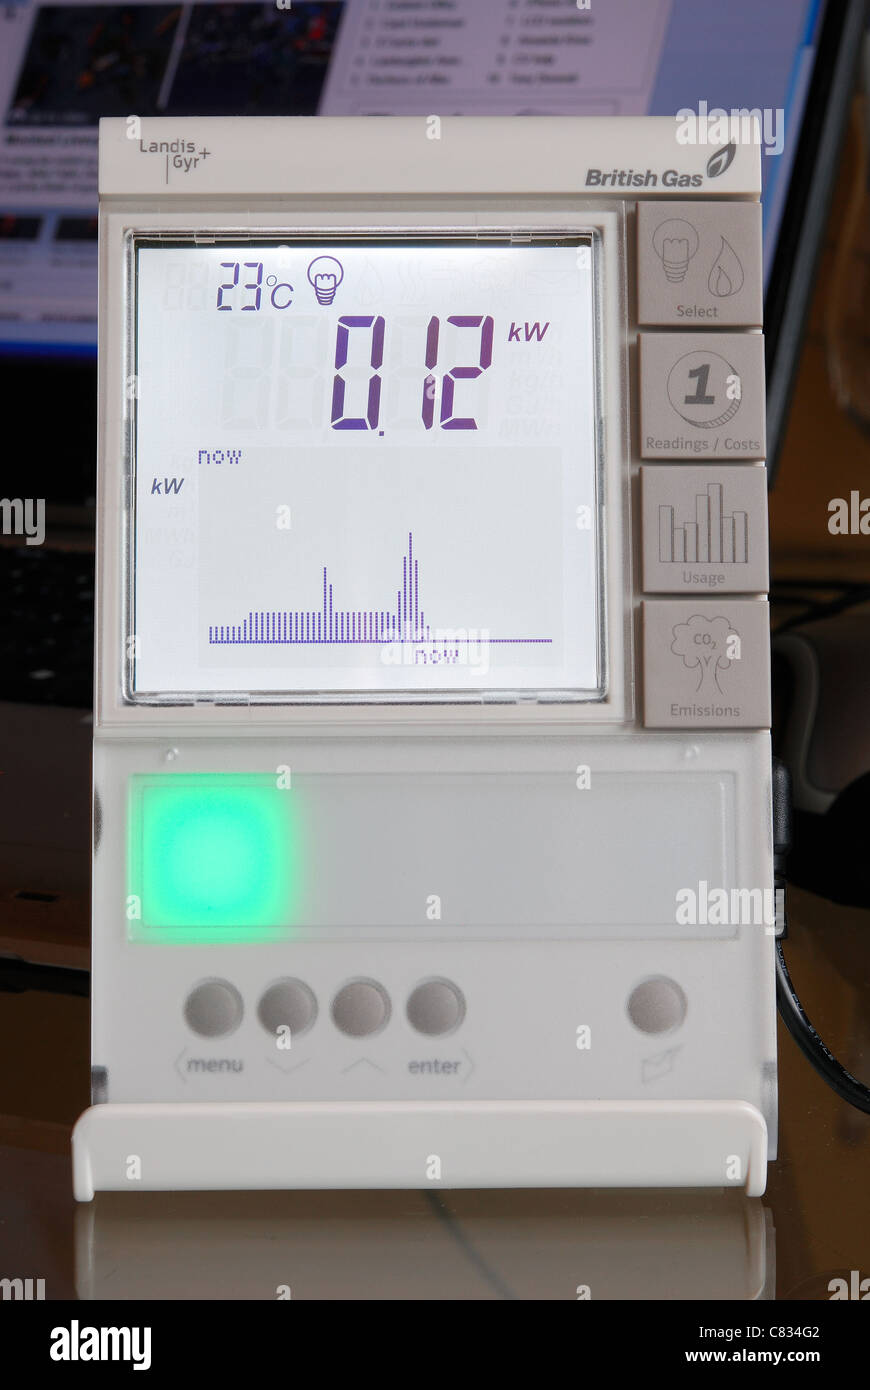 A domestic British Gas Smart Meter in 'electricity' mode, with green light indicating low energy consumption. - Stock Image